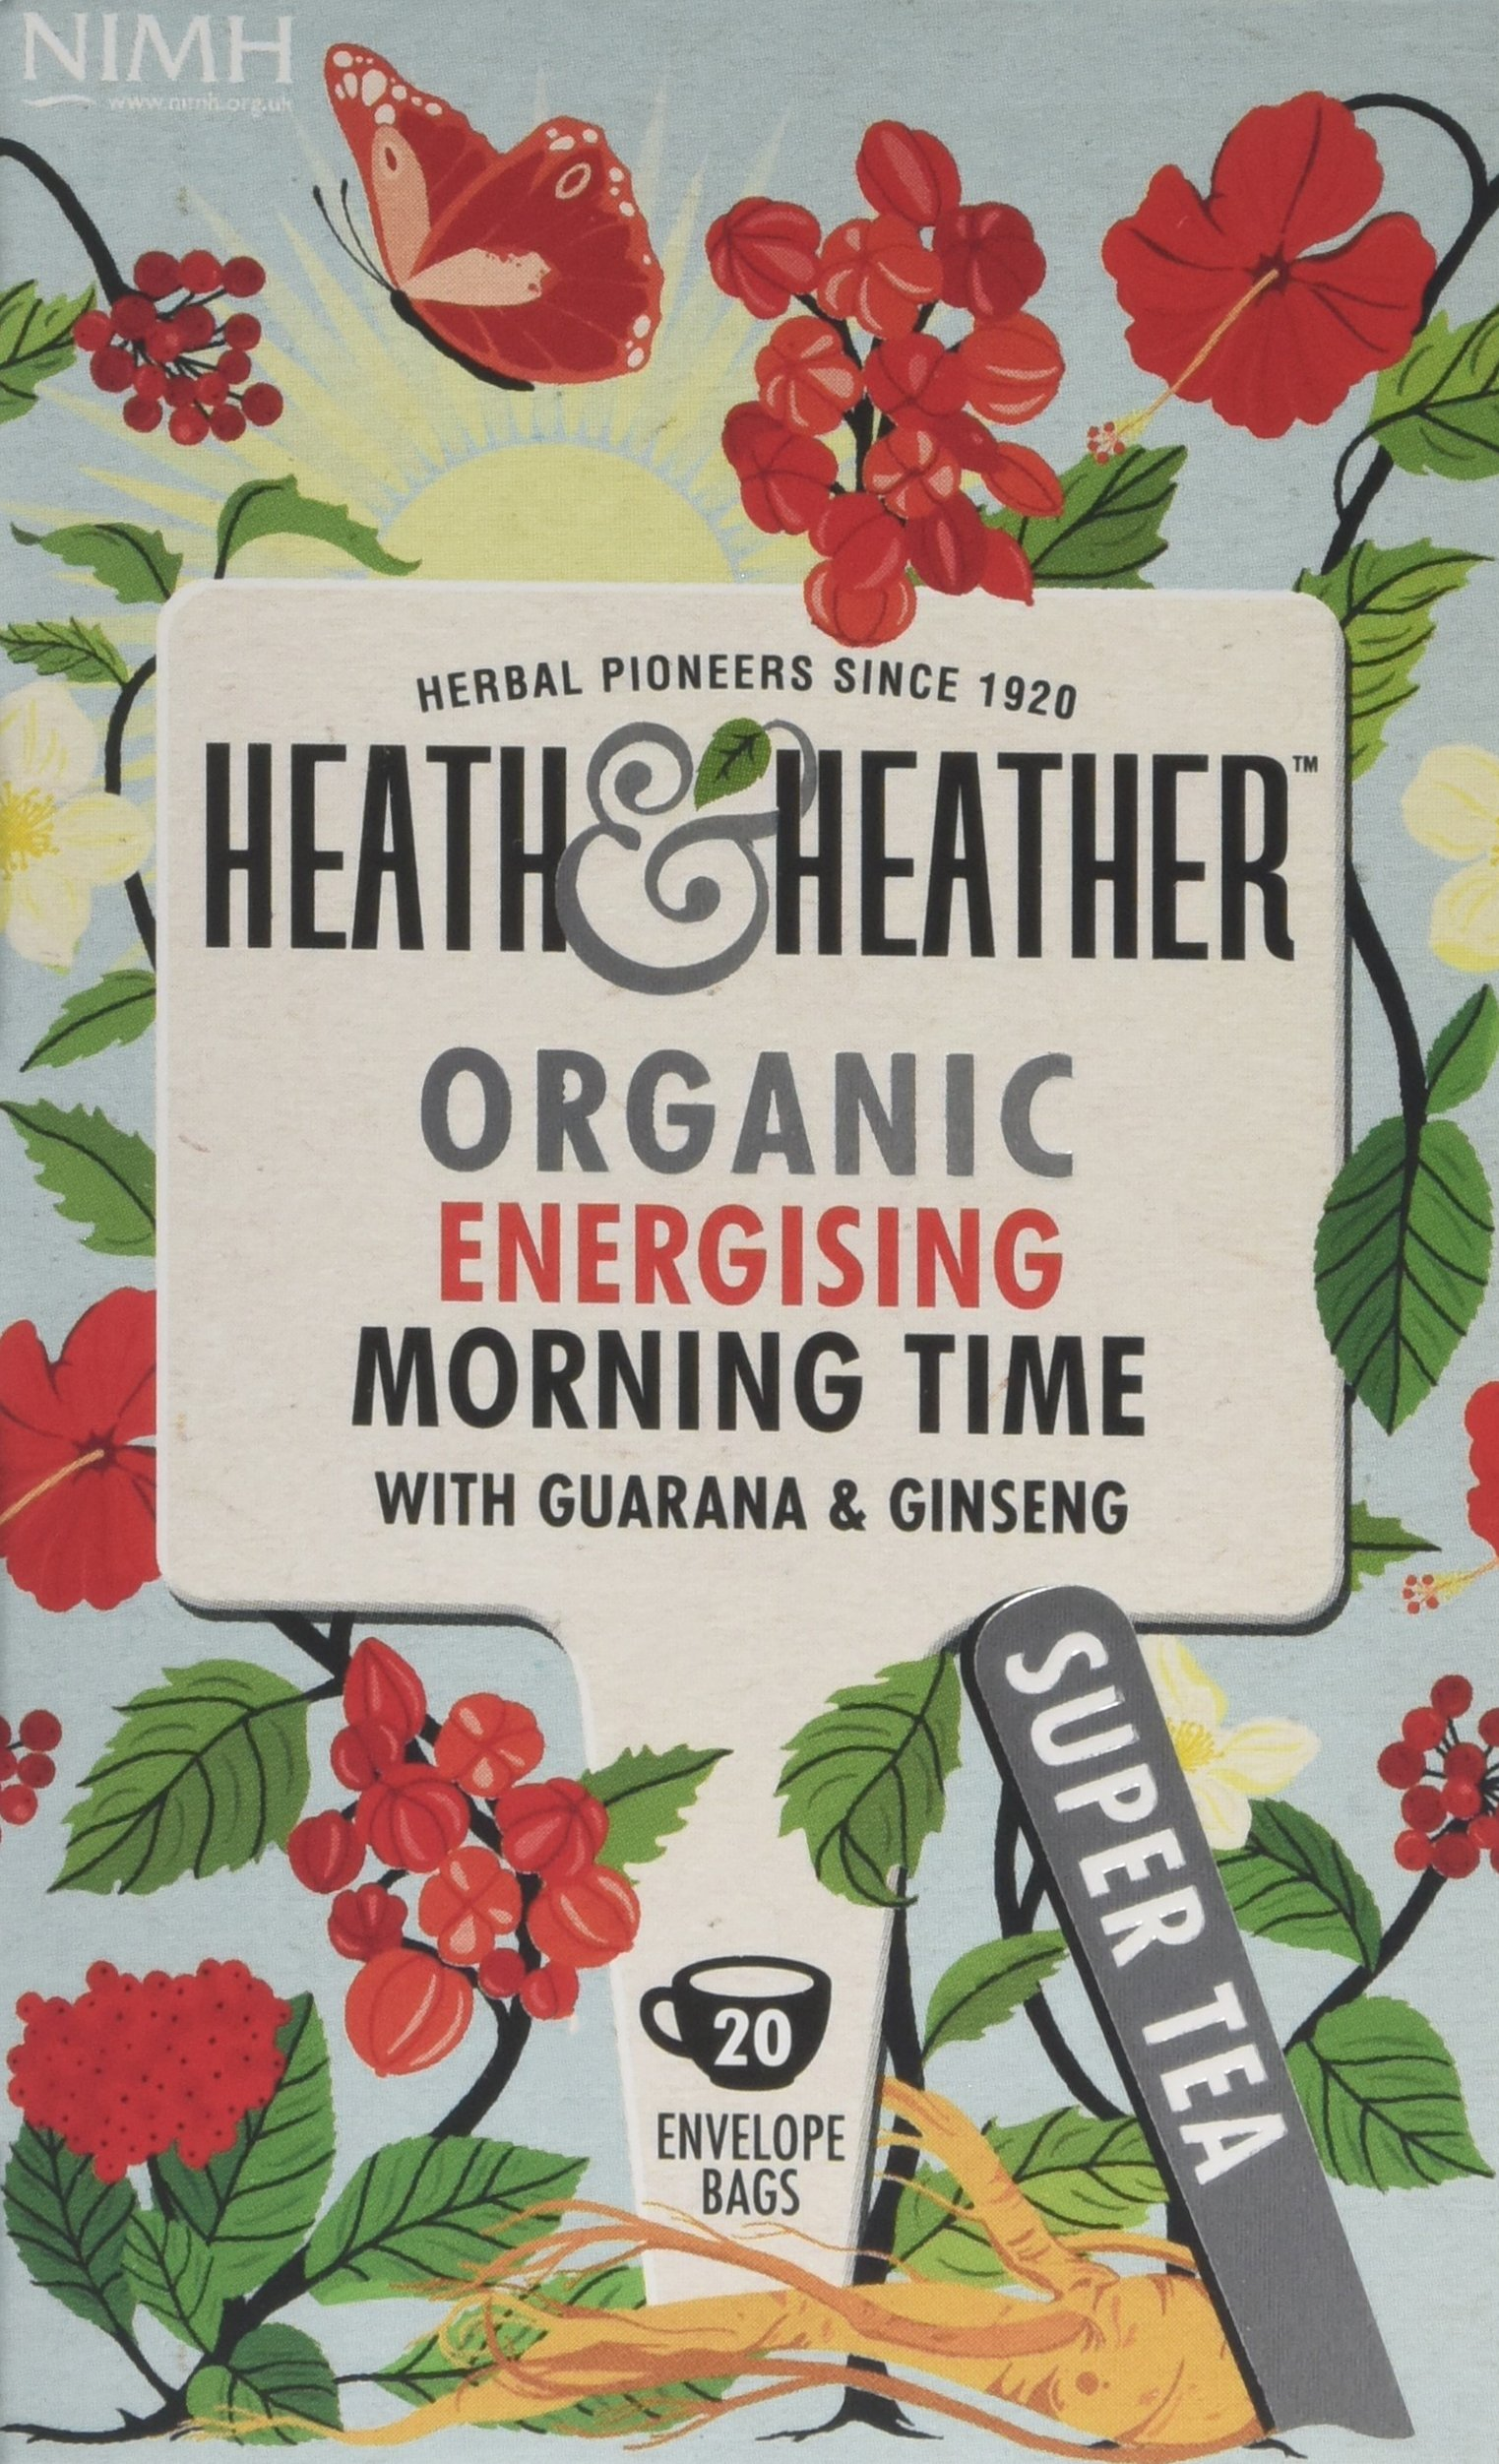 Heath & Heather health tea tea bundle (soil association) (infusions) (6 packs of 20 bags) (120 bags) (a floral, spicy tea with aromas of ginseng, guarana, rosehip) (brews in 3-5 minutes)